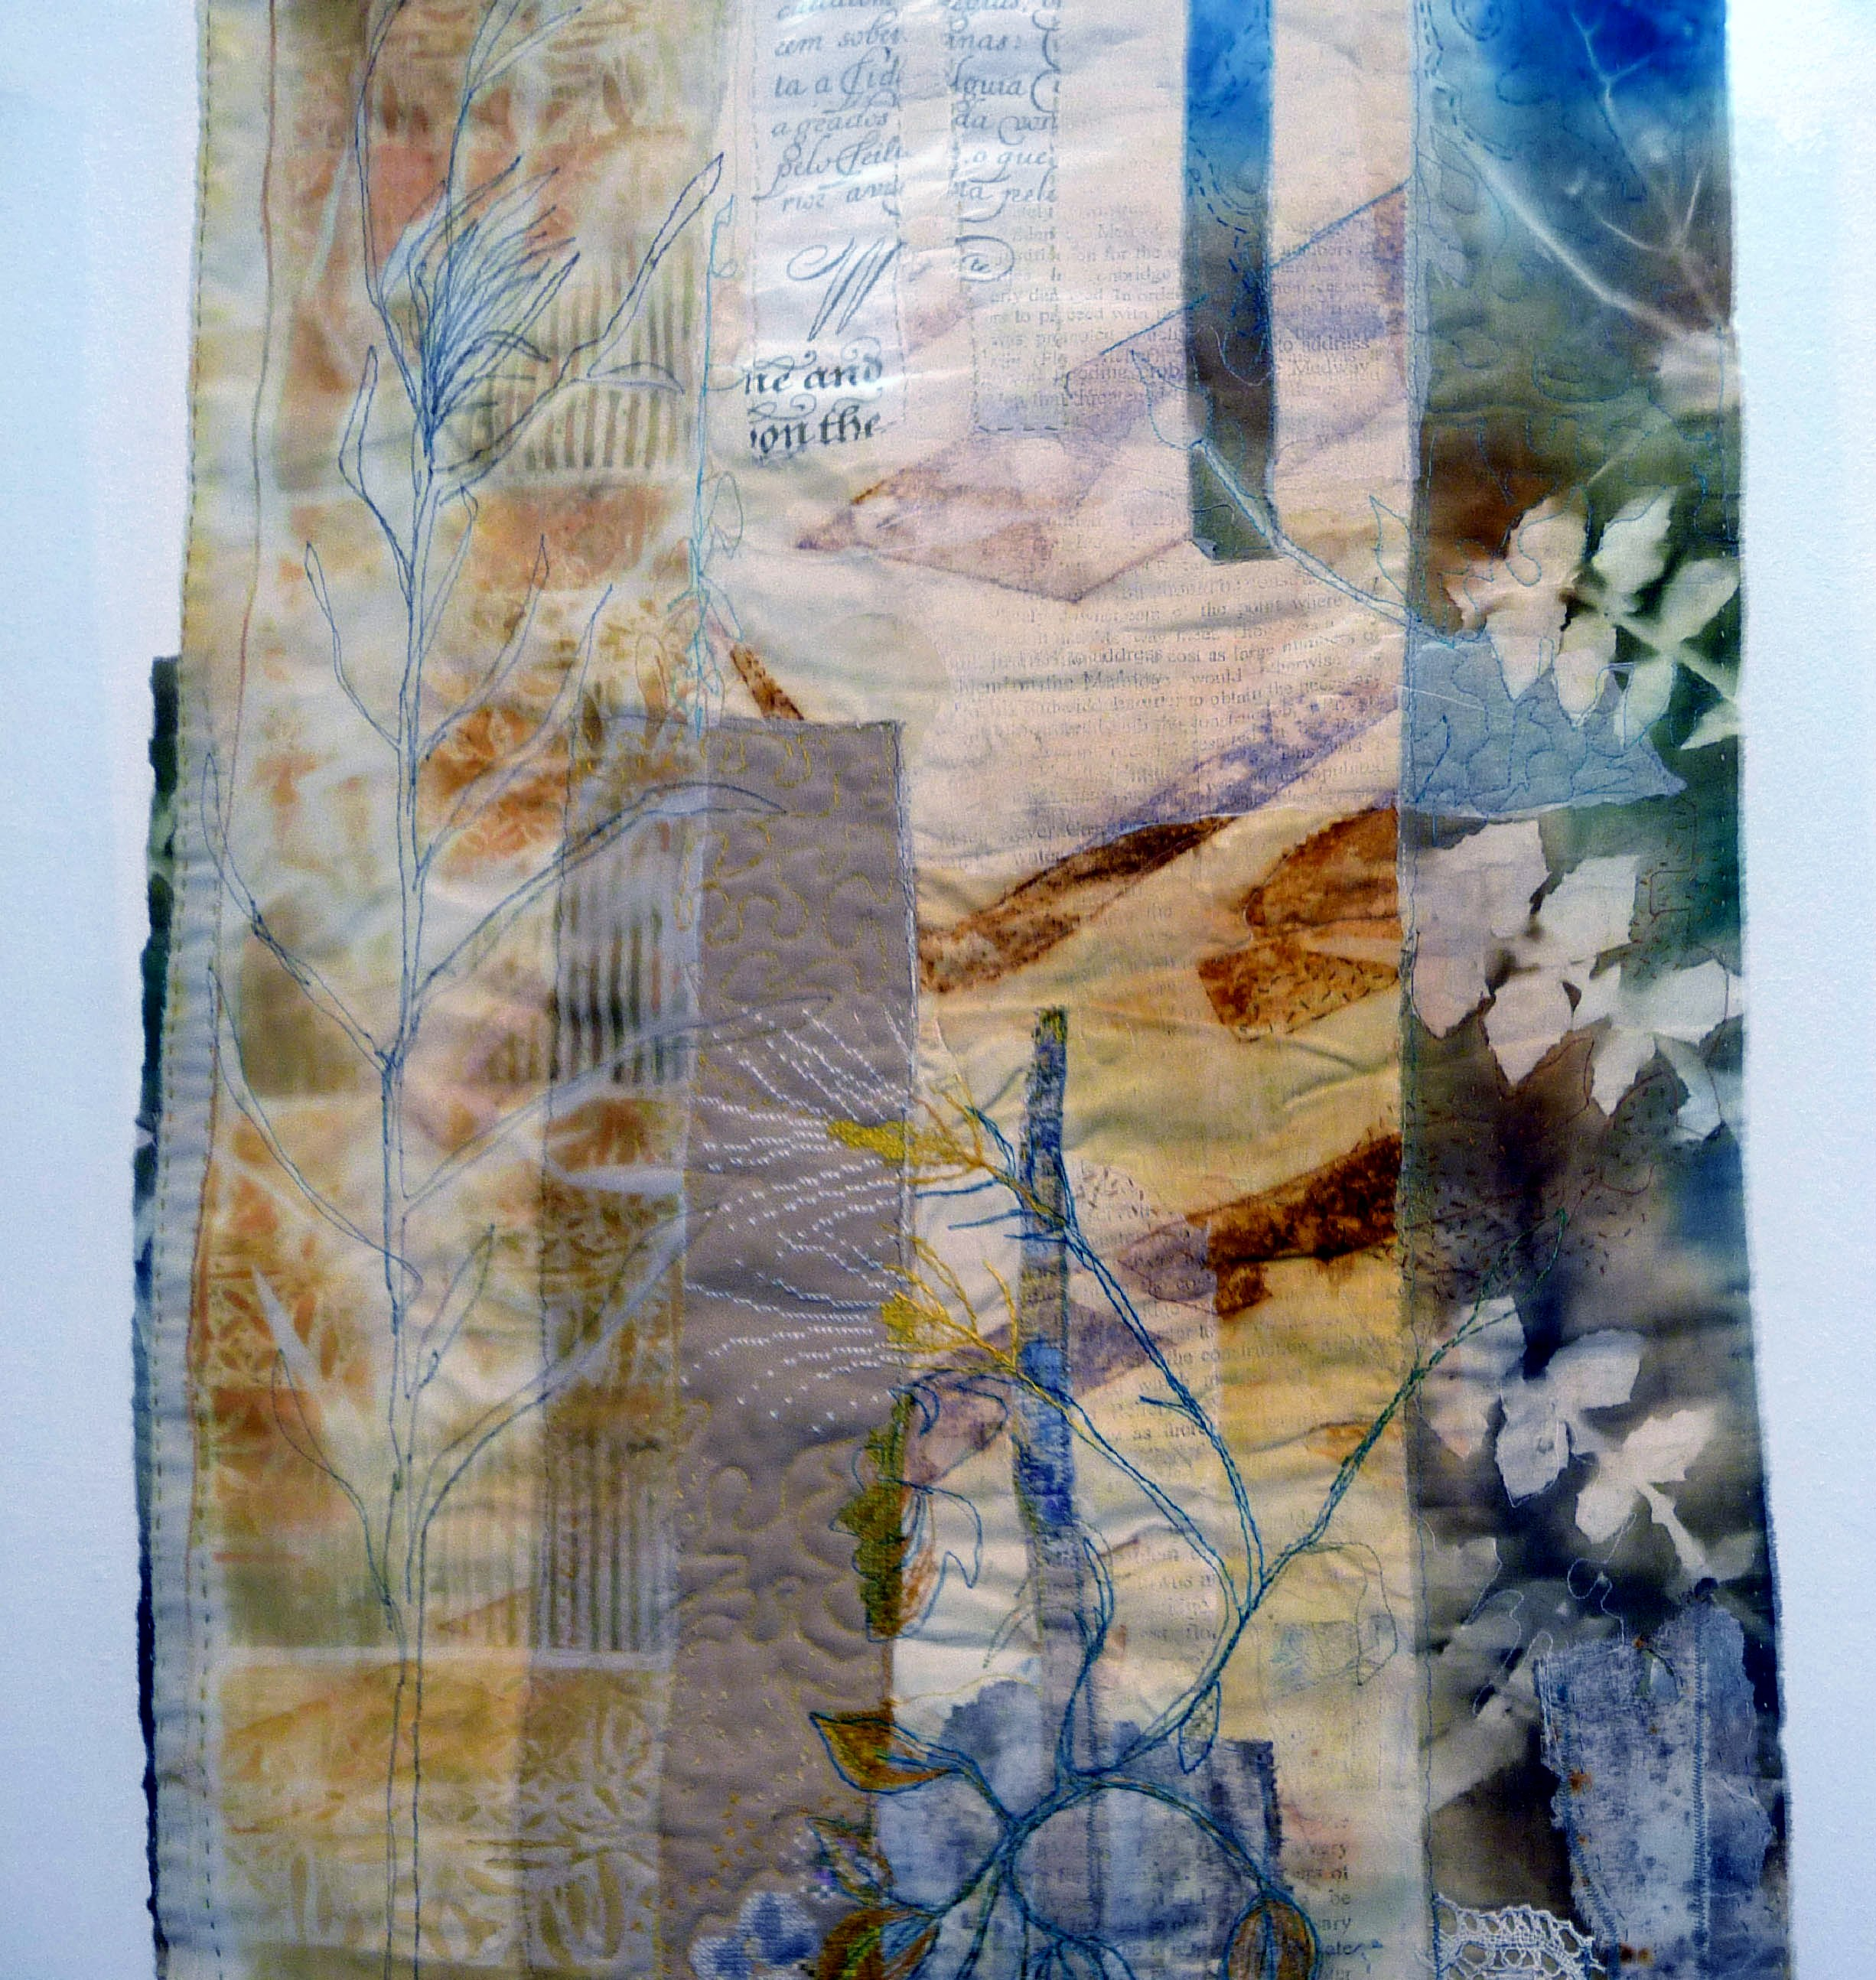 entry to Capability Brown Festival with Embroiderers' Guild, COMMON PLACE - HORRID HILL by Cas Holmes